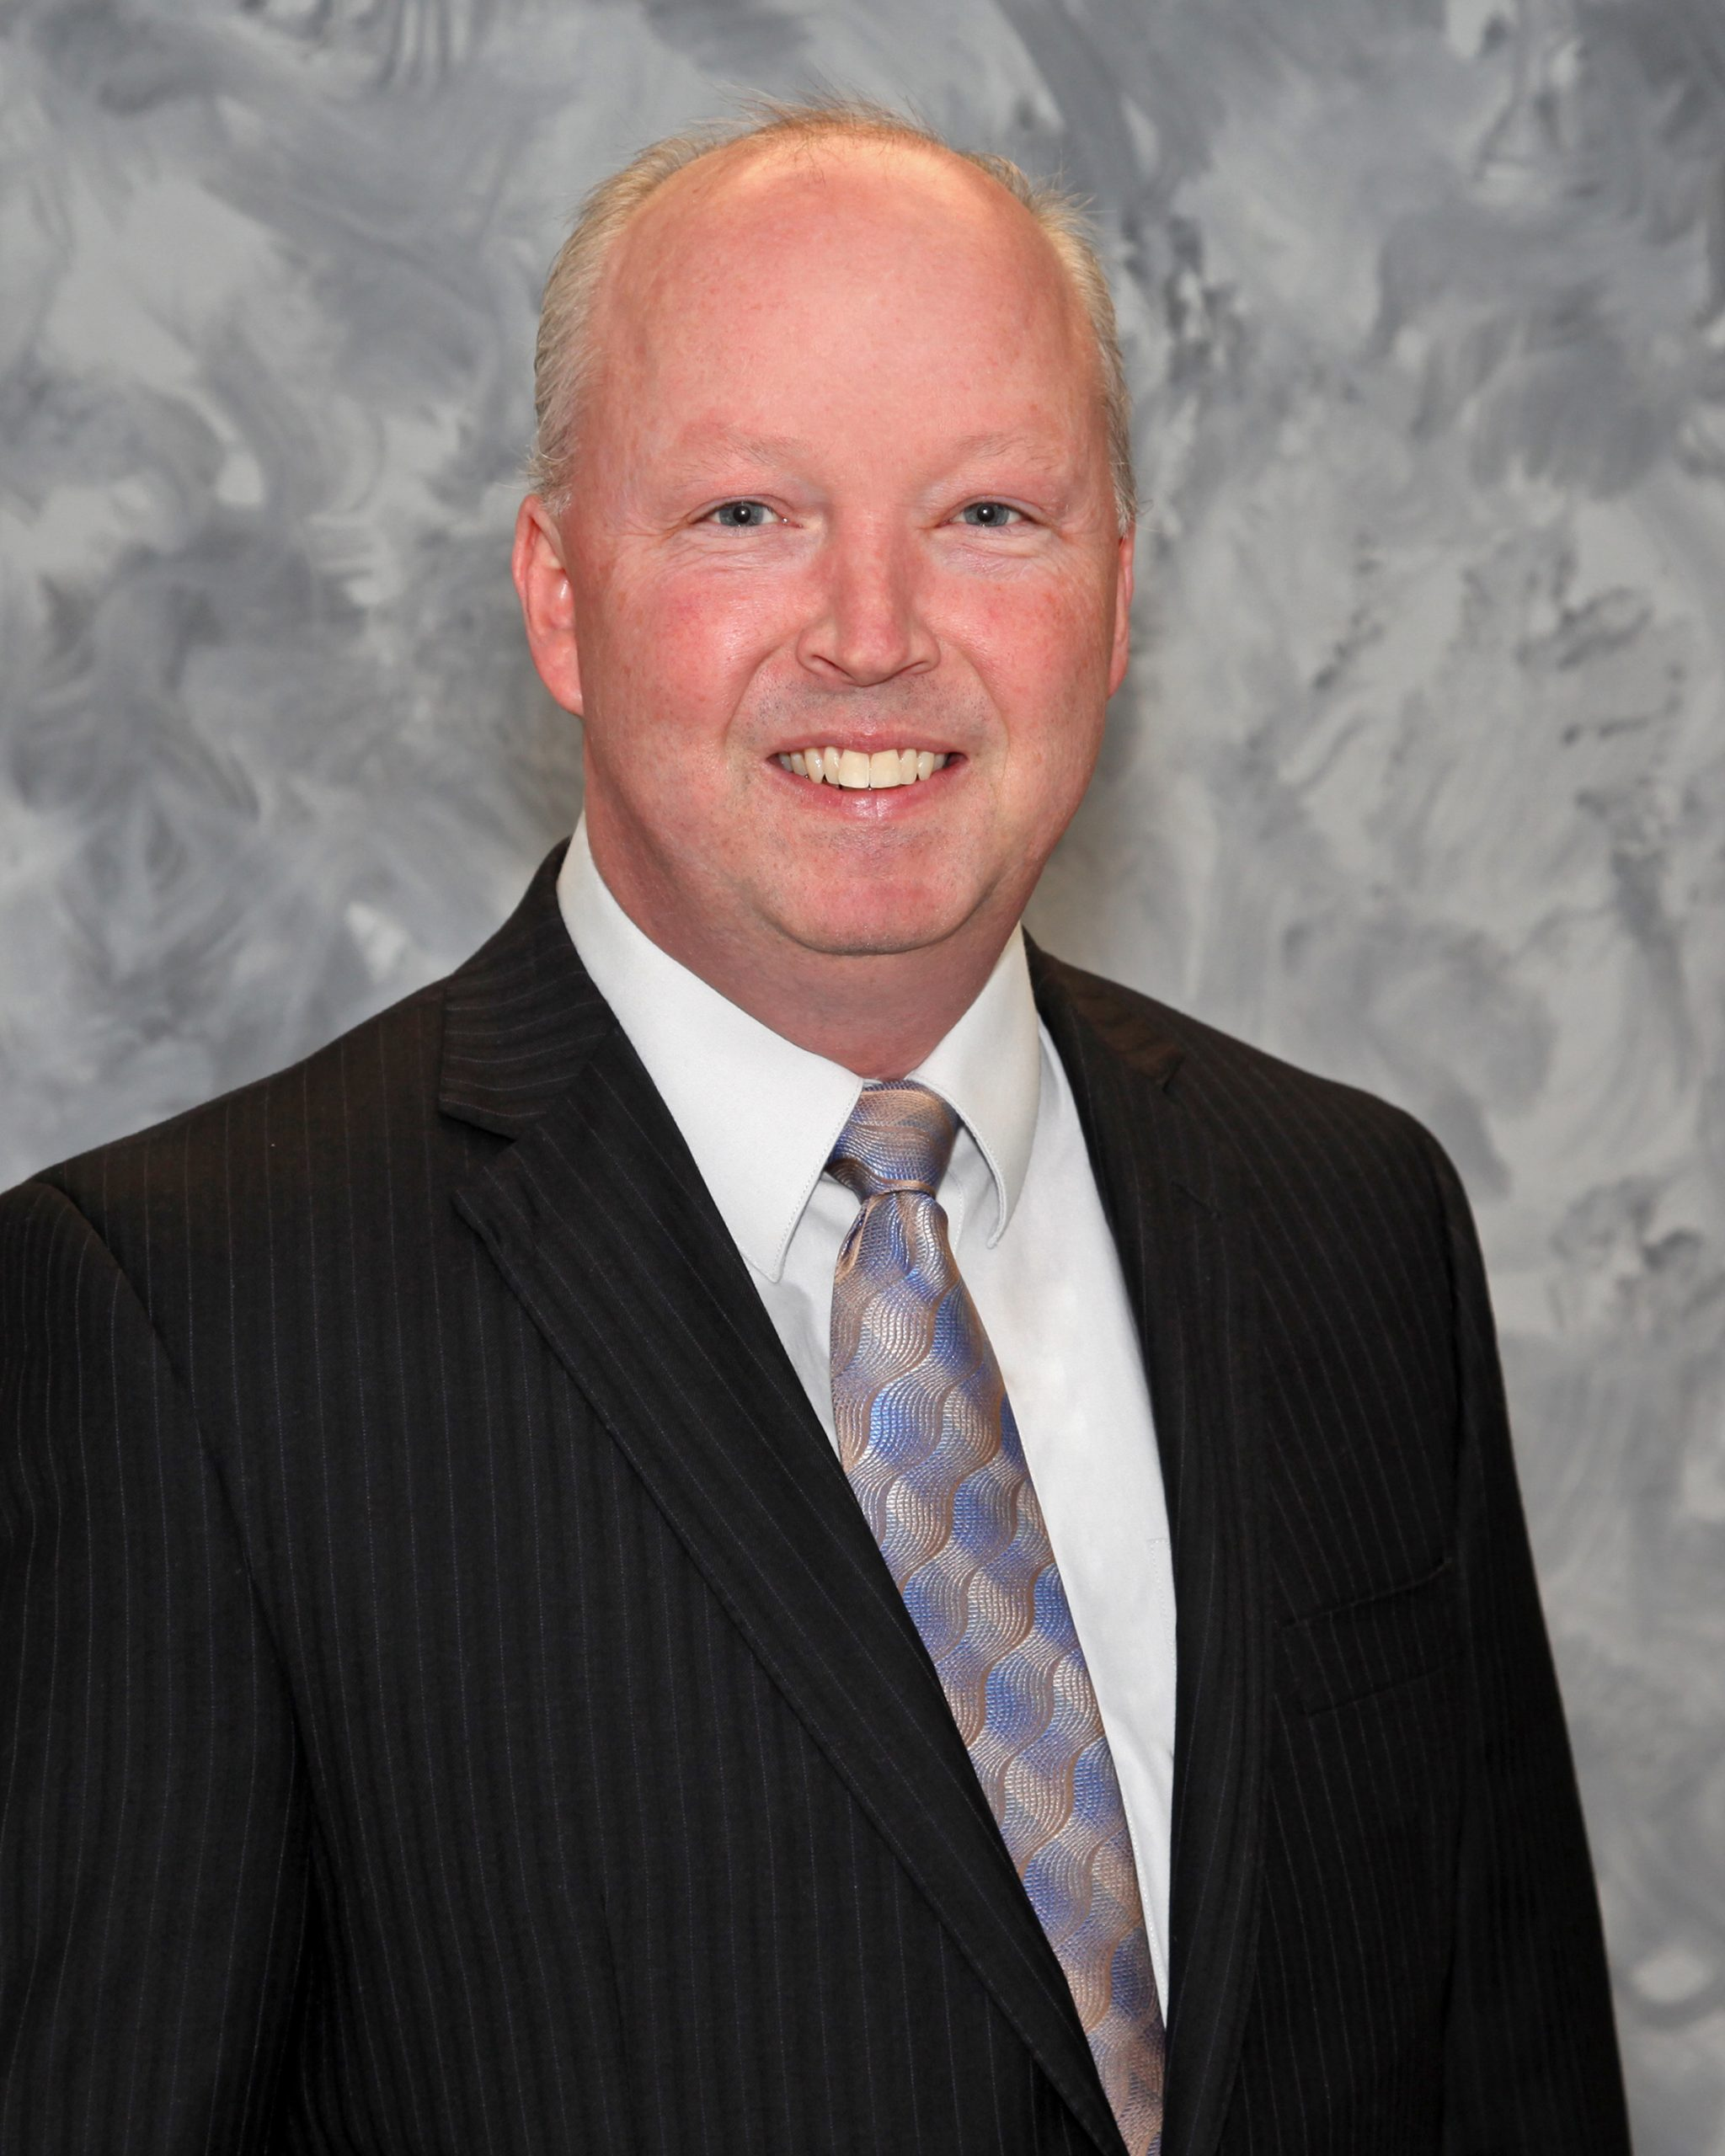 Dr. Ryan Jennings, Chief Medical Officer at HSHS St. Anthony's Memorial Hospital, receives Certified Physician Executive Credentialing